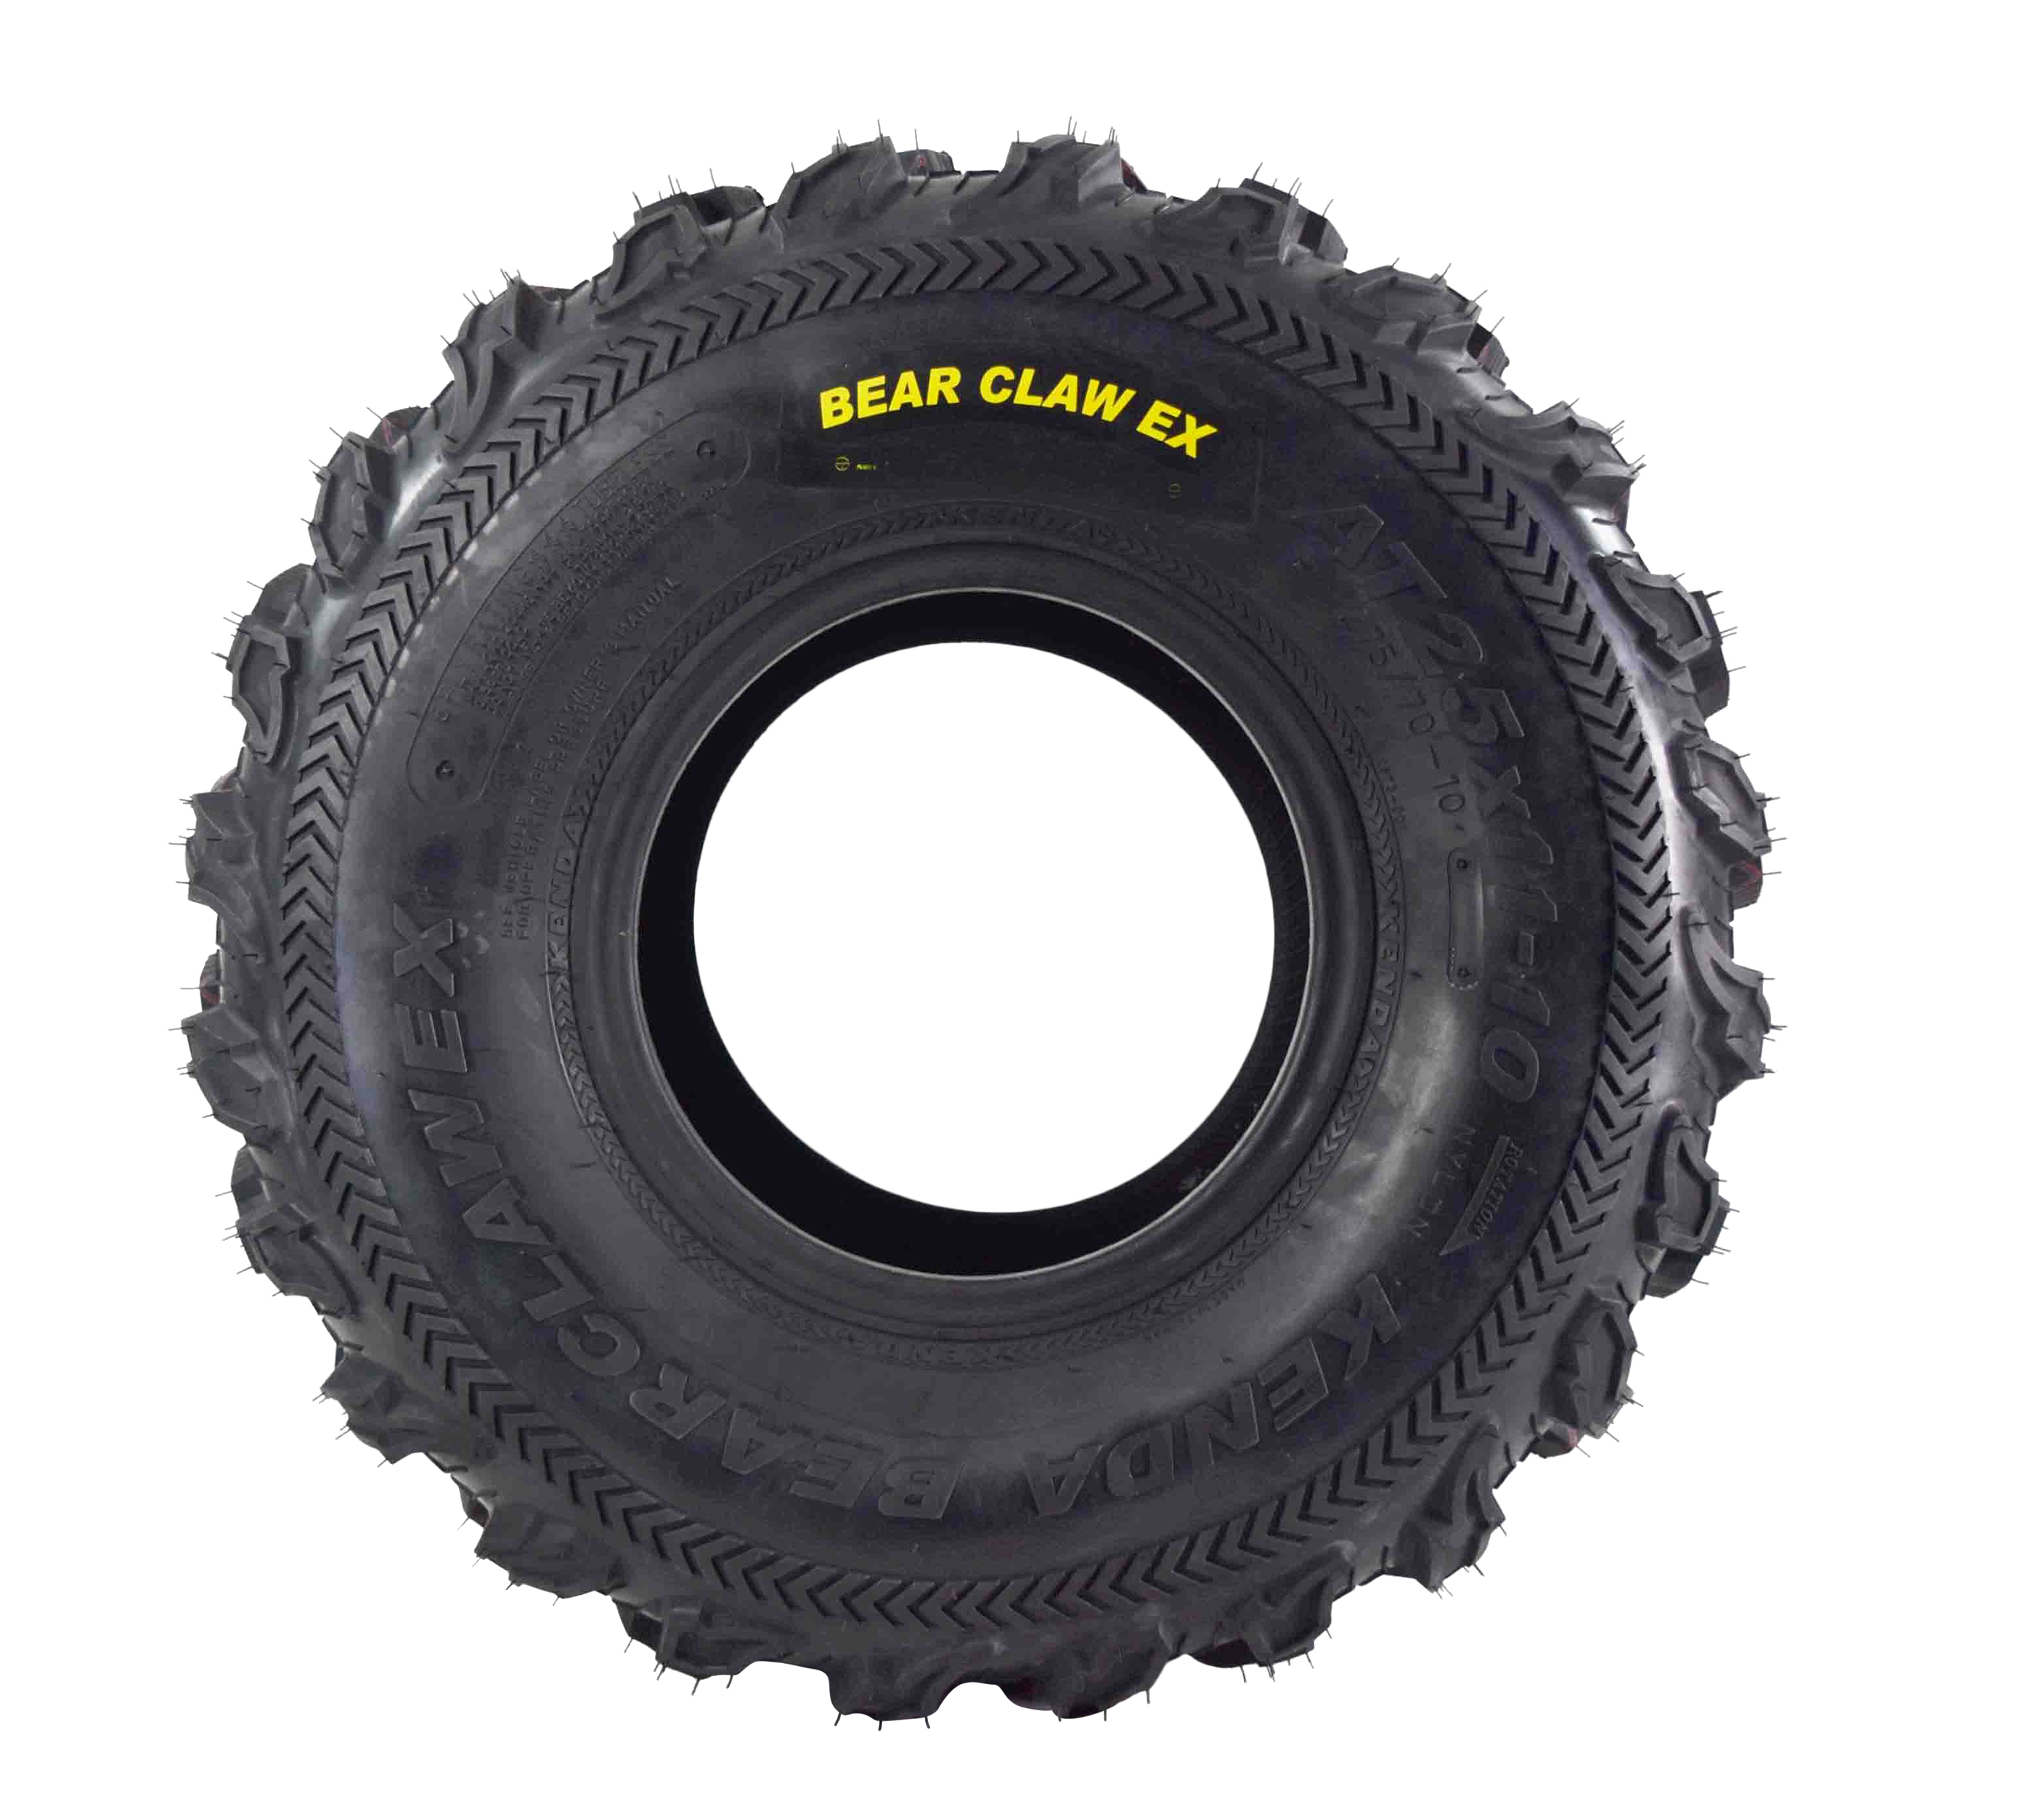 Kenda-Bear-Claw-EX-25x8-12-F-25x11-10-R-ATV-6-PLY-Tires-Bearclaw-4-Pack-Set-image-8